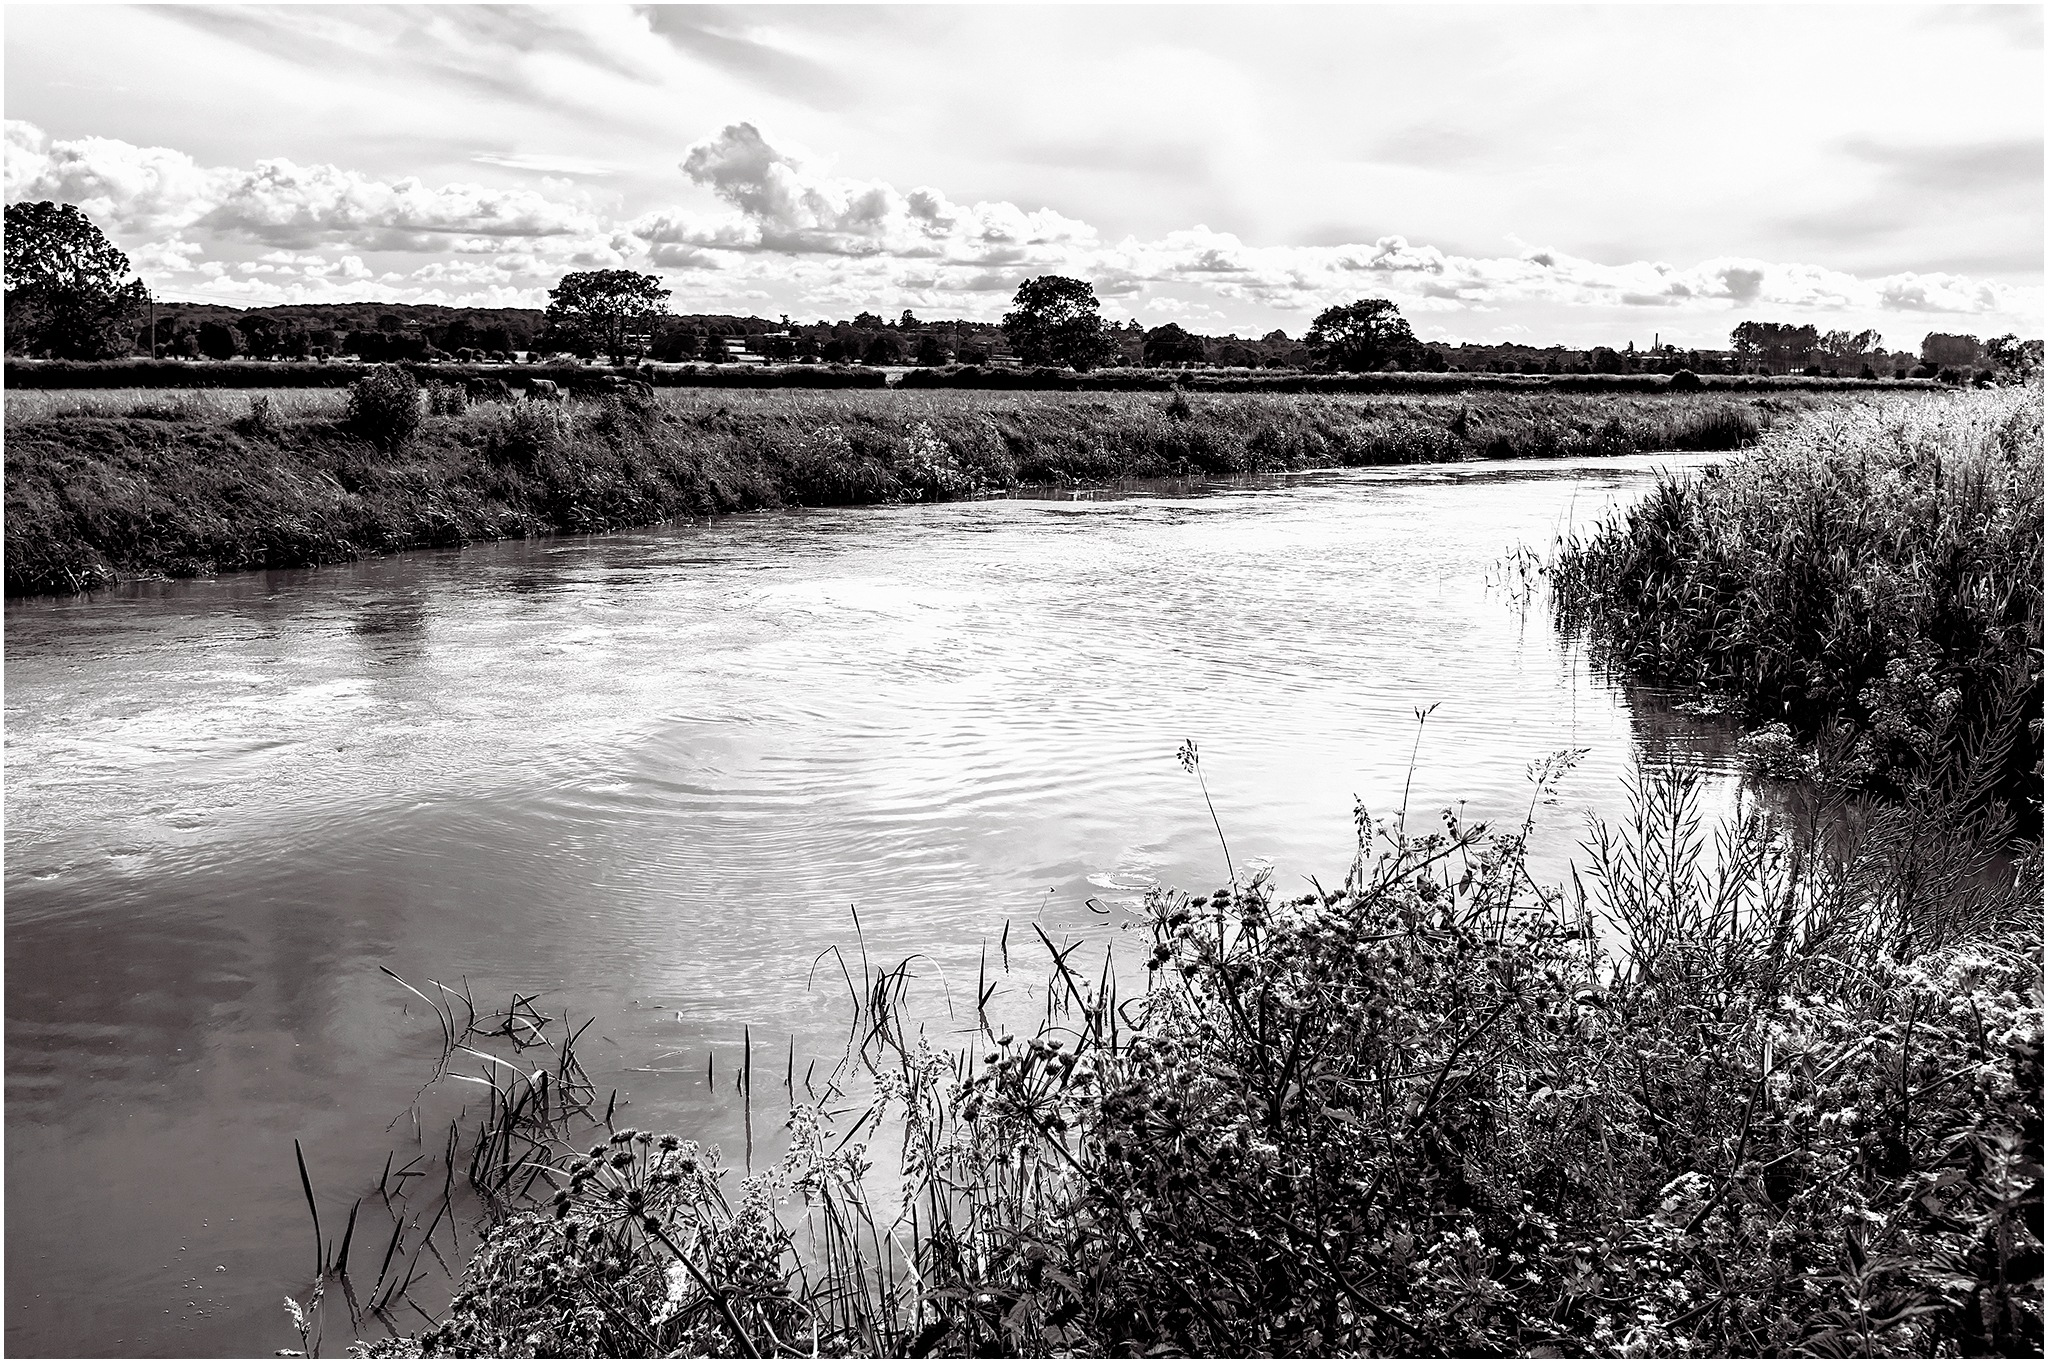 Down by the River - part 2 B&W by Clive Ayron